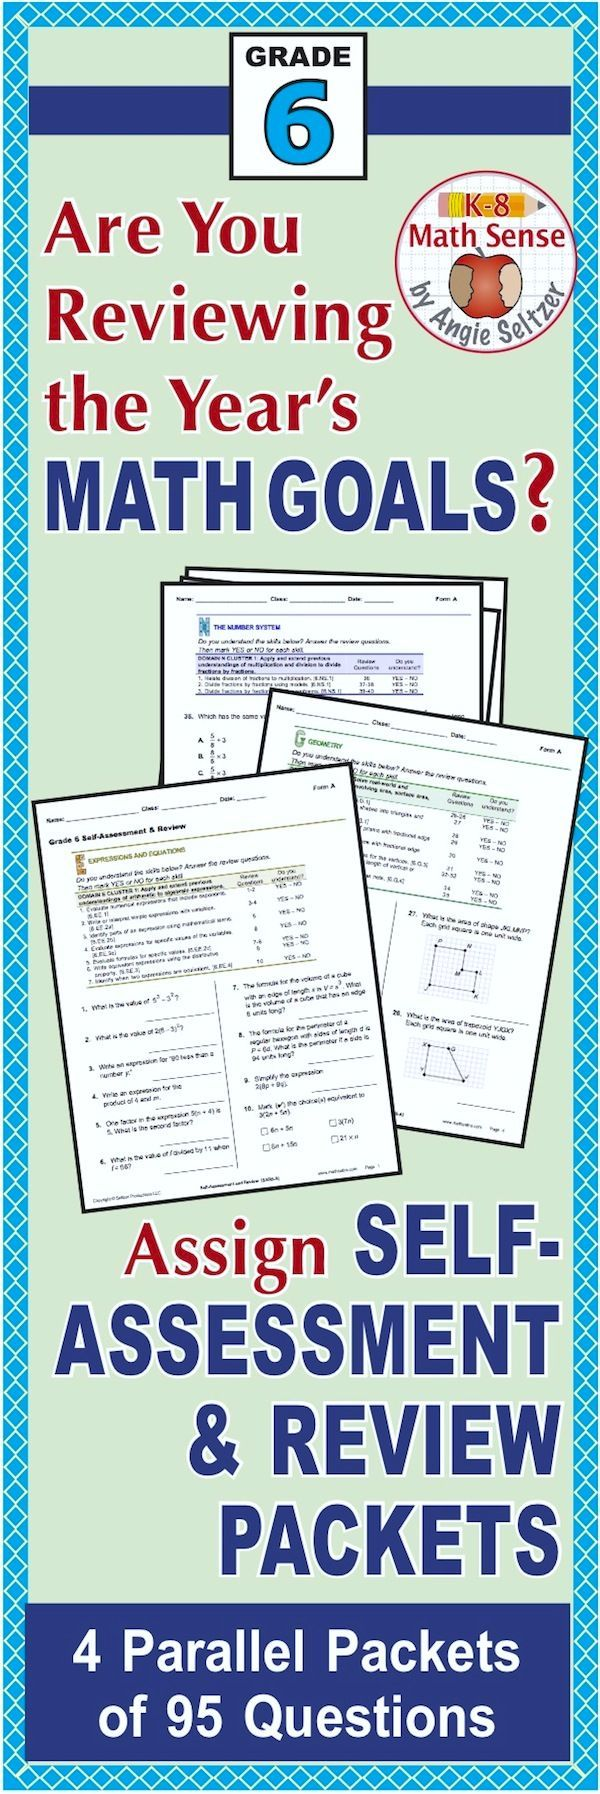 This bundle includes four comprehensive review packets for Grade 6, also available separately. The four forms (A-D) are parallel and can be used as pre- and post-tests, review, or quick reference. Questions are grouped by domain and aligned to a list of Common Core goals for self-assessment. The PREVIEW shows Form A. Take a look! ~by Angie Seltzer